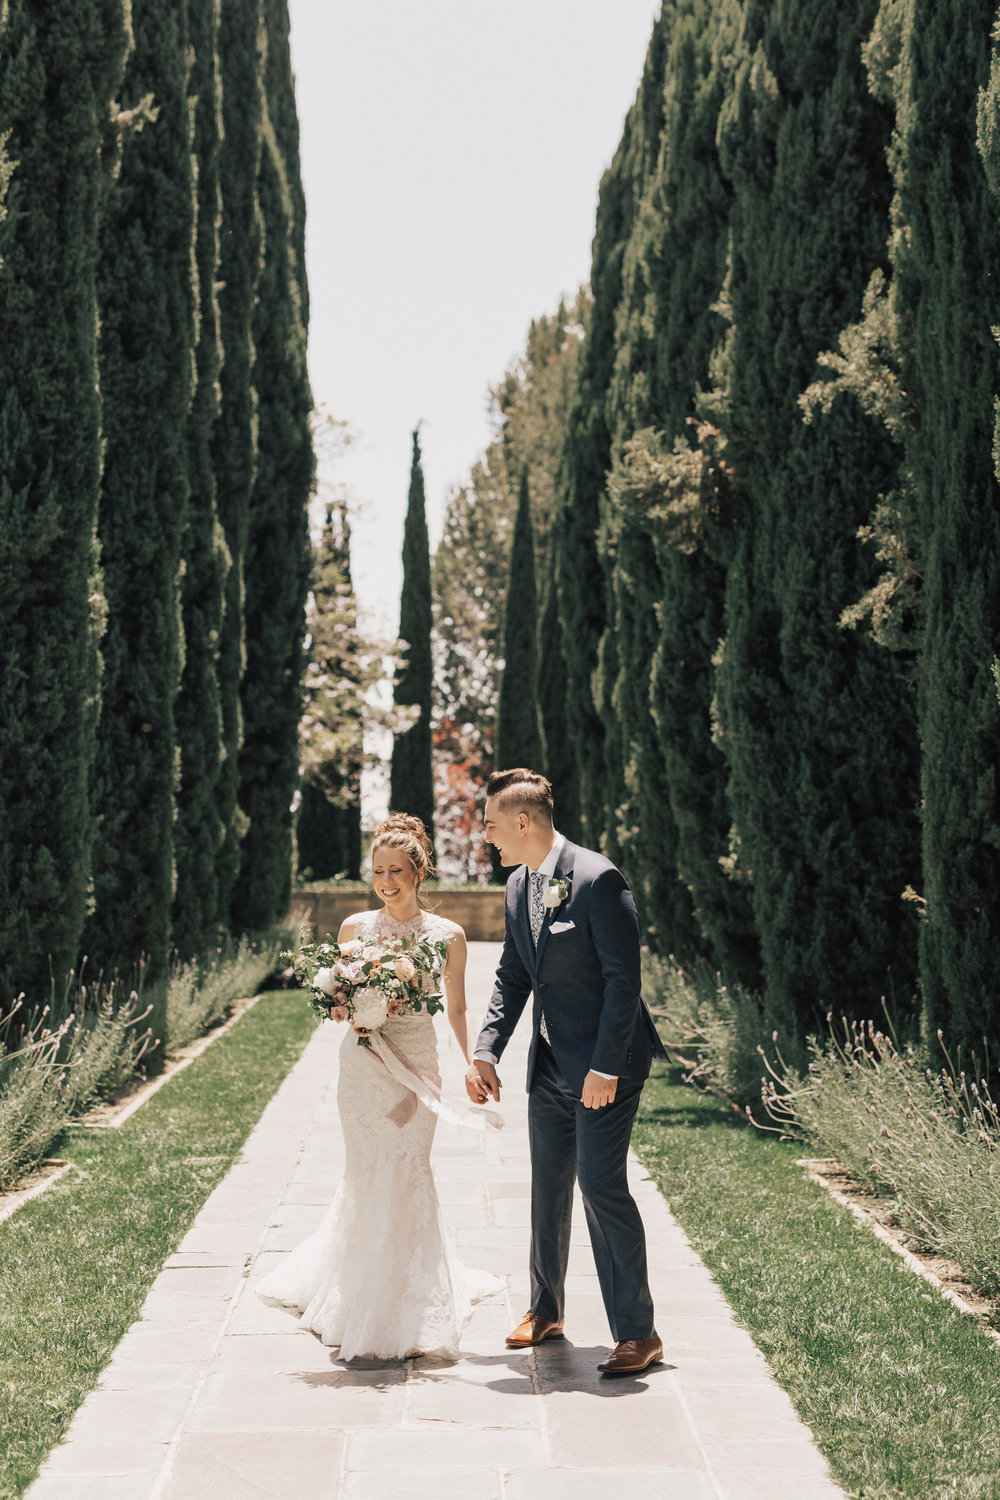 Greystone Mansion, Greystone Mansion Beverly Hills, Beverly Hills Wedding, California Estate Wedding, couple first look wedding photo